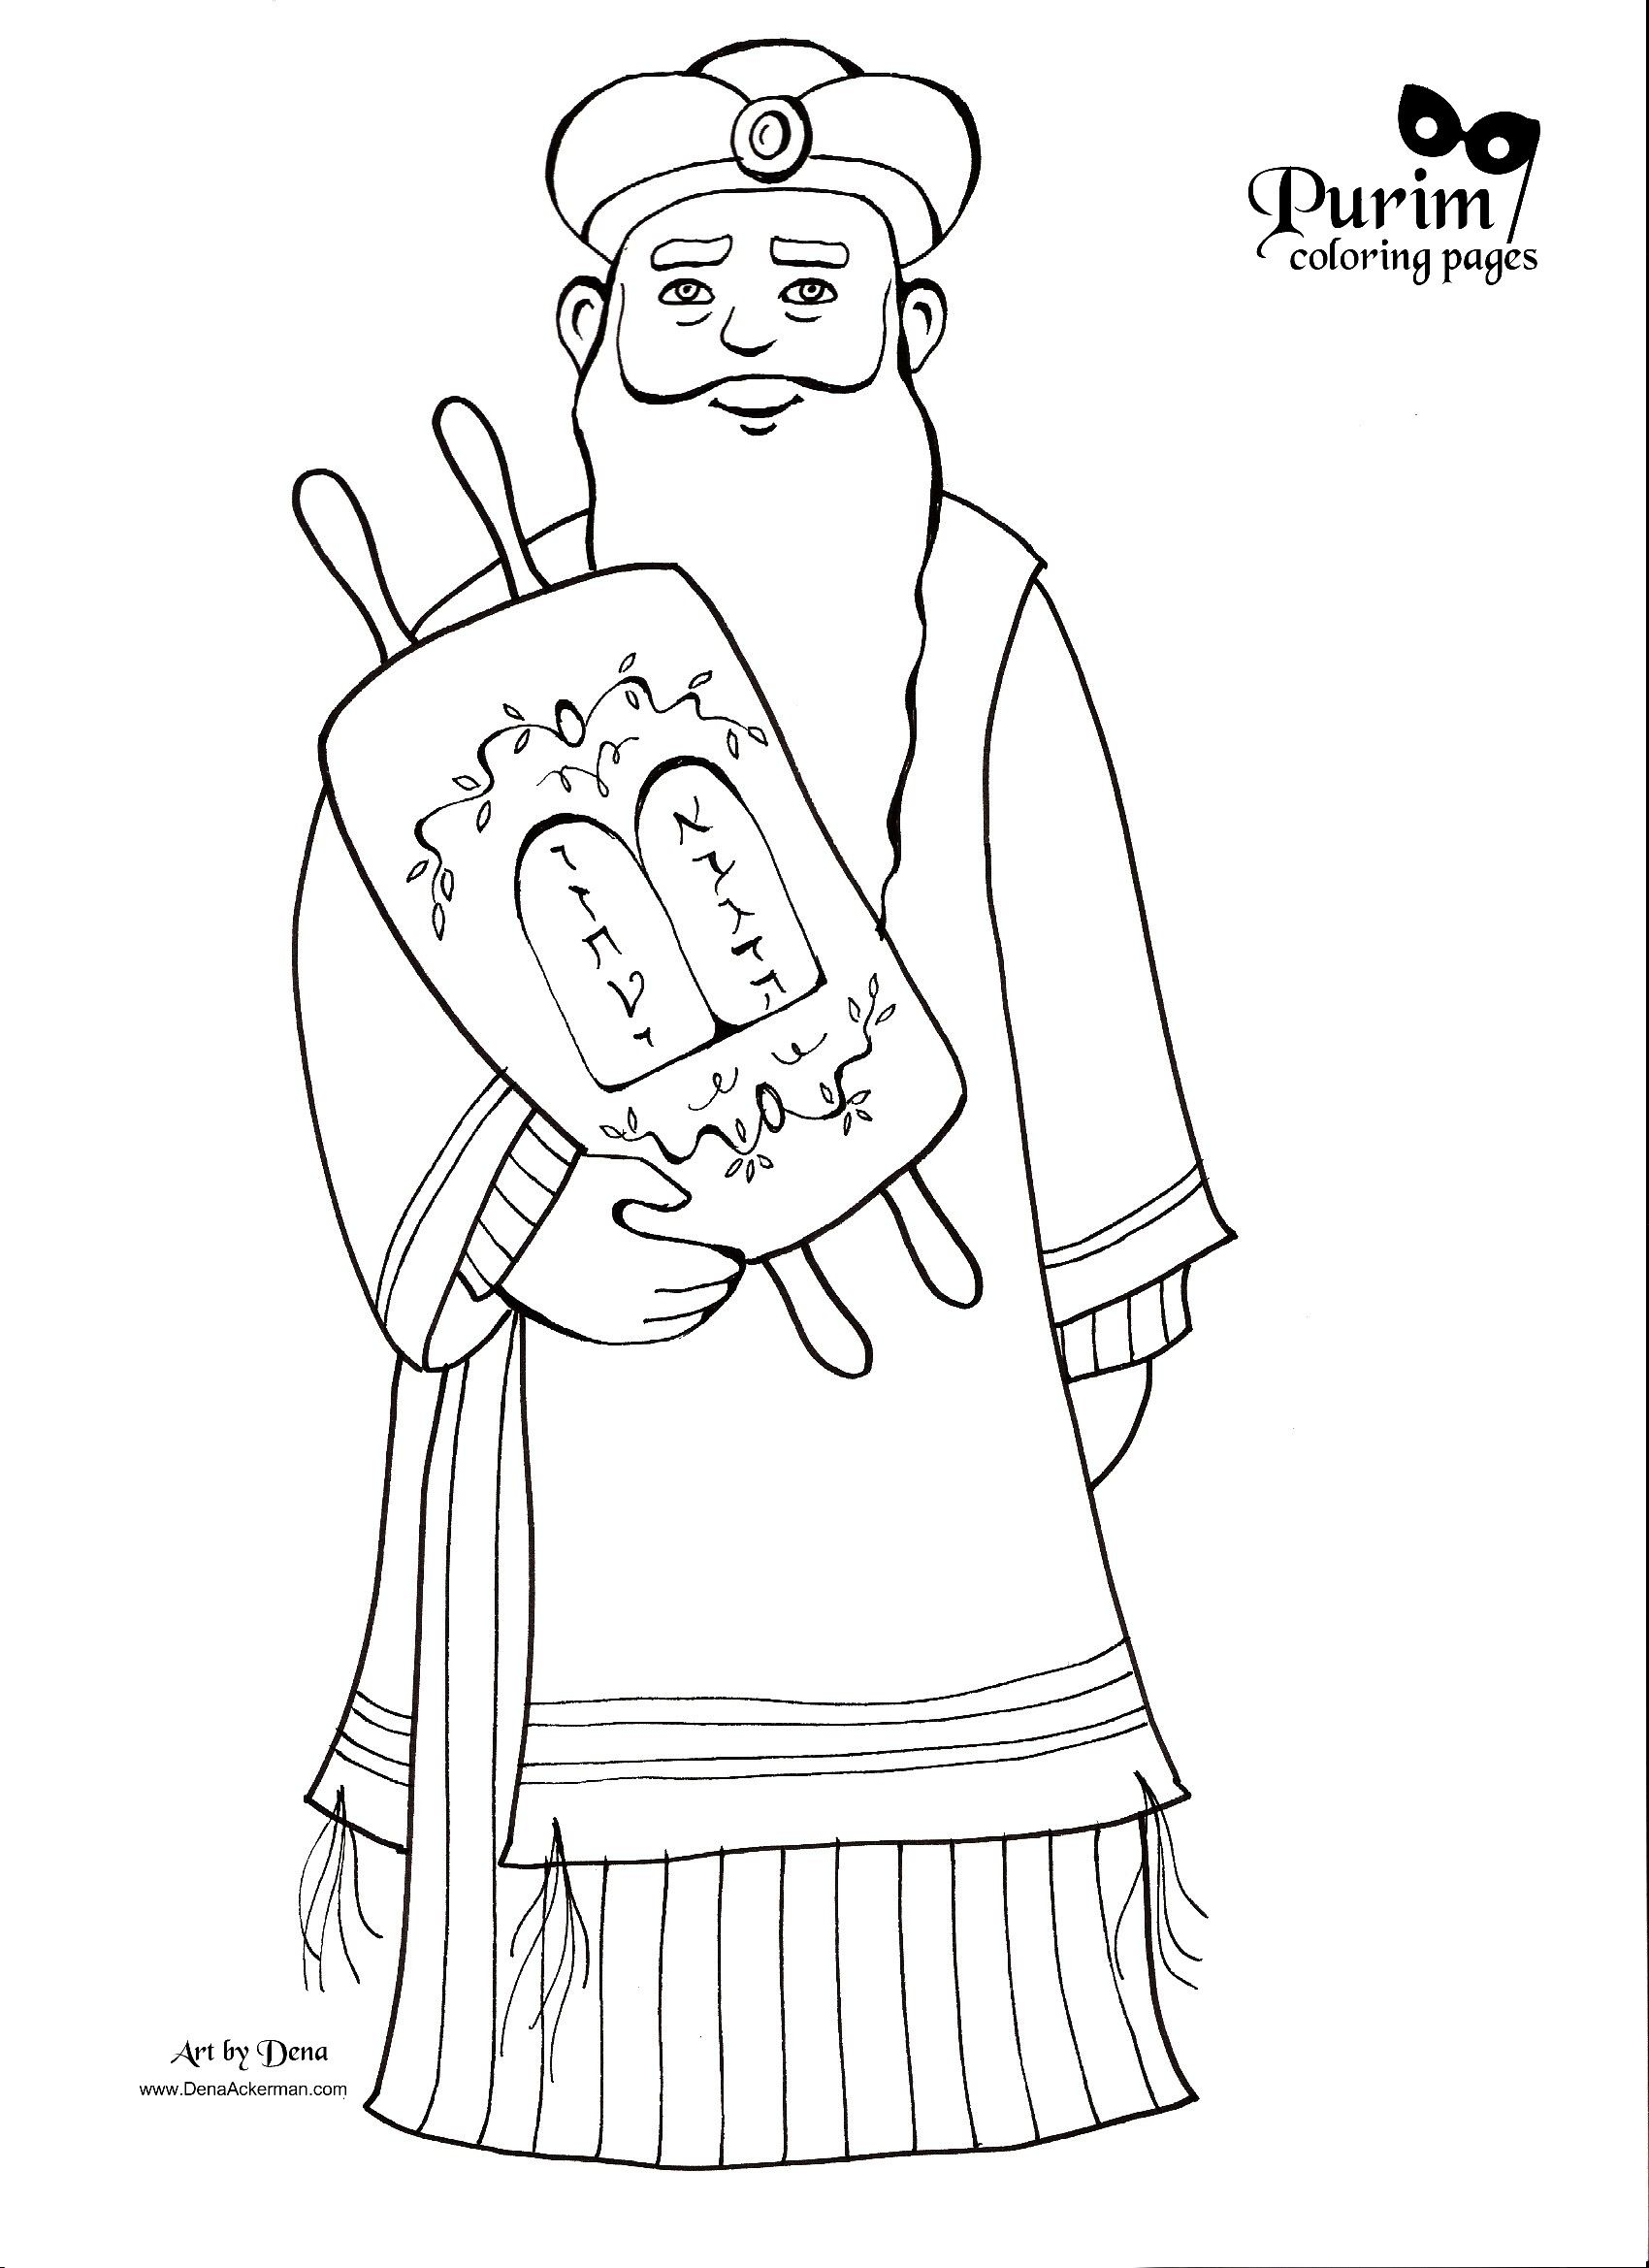 Printable coloring pages of queen esther - Find This Pin And More On Everything Purim Purim Coloring Pages